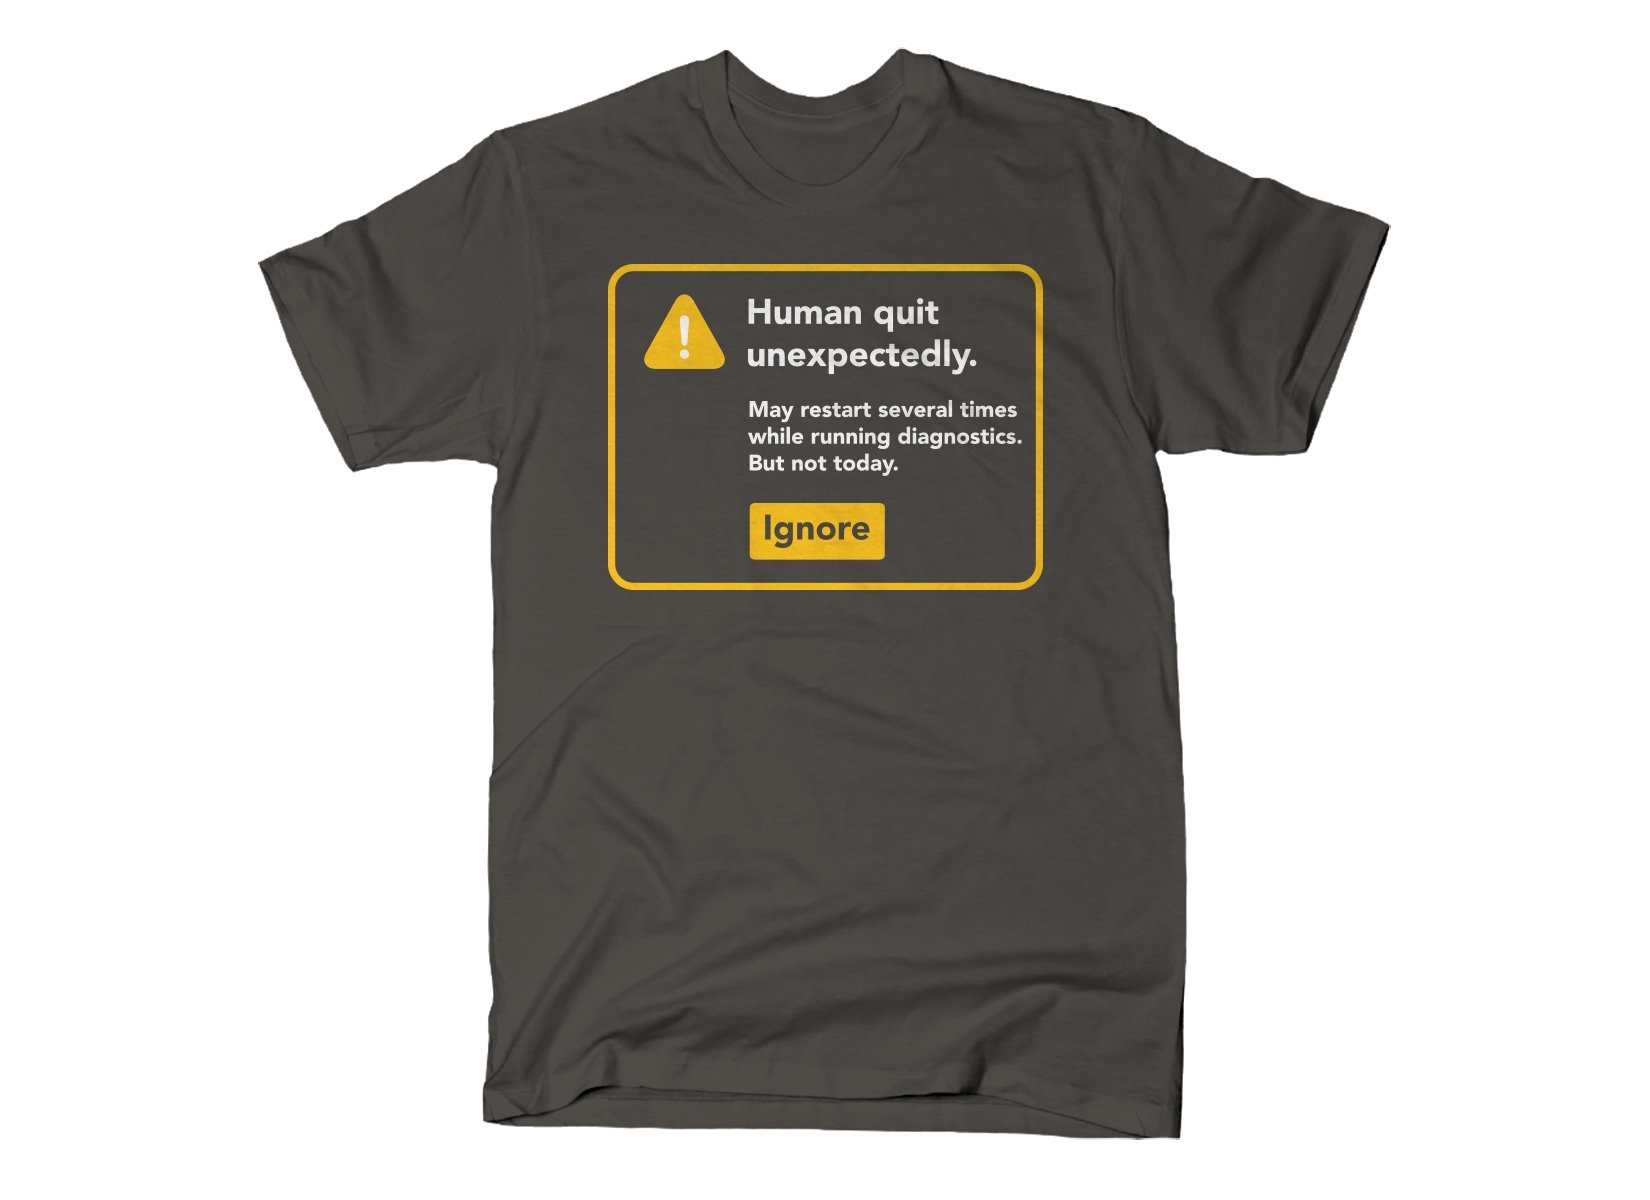 Human Quit Unexpectedly on Mens T-Shirt